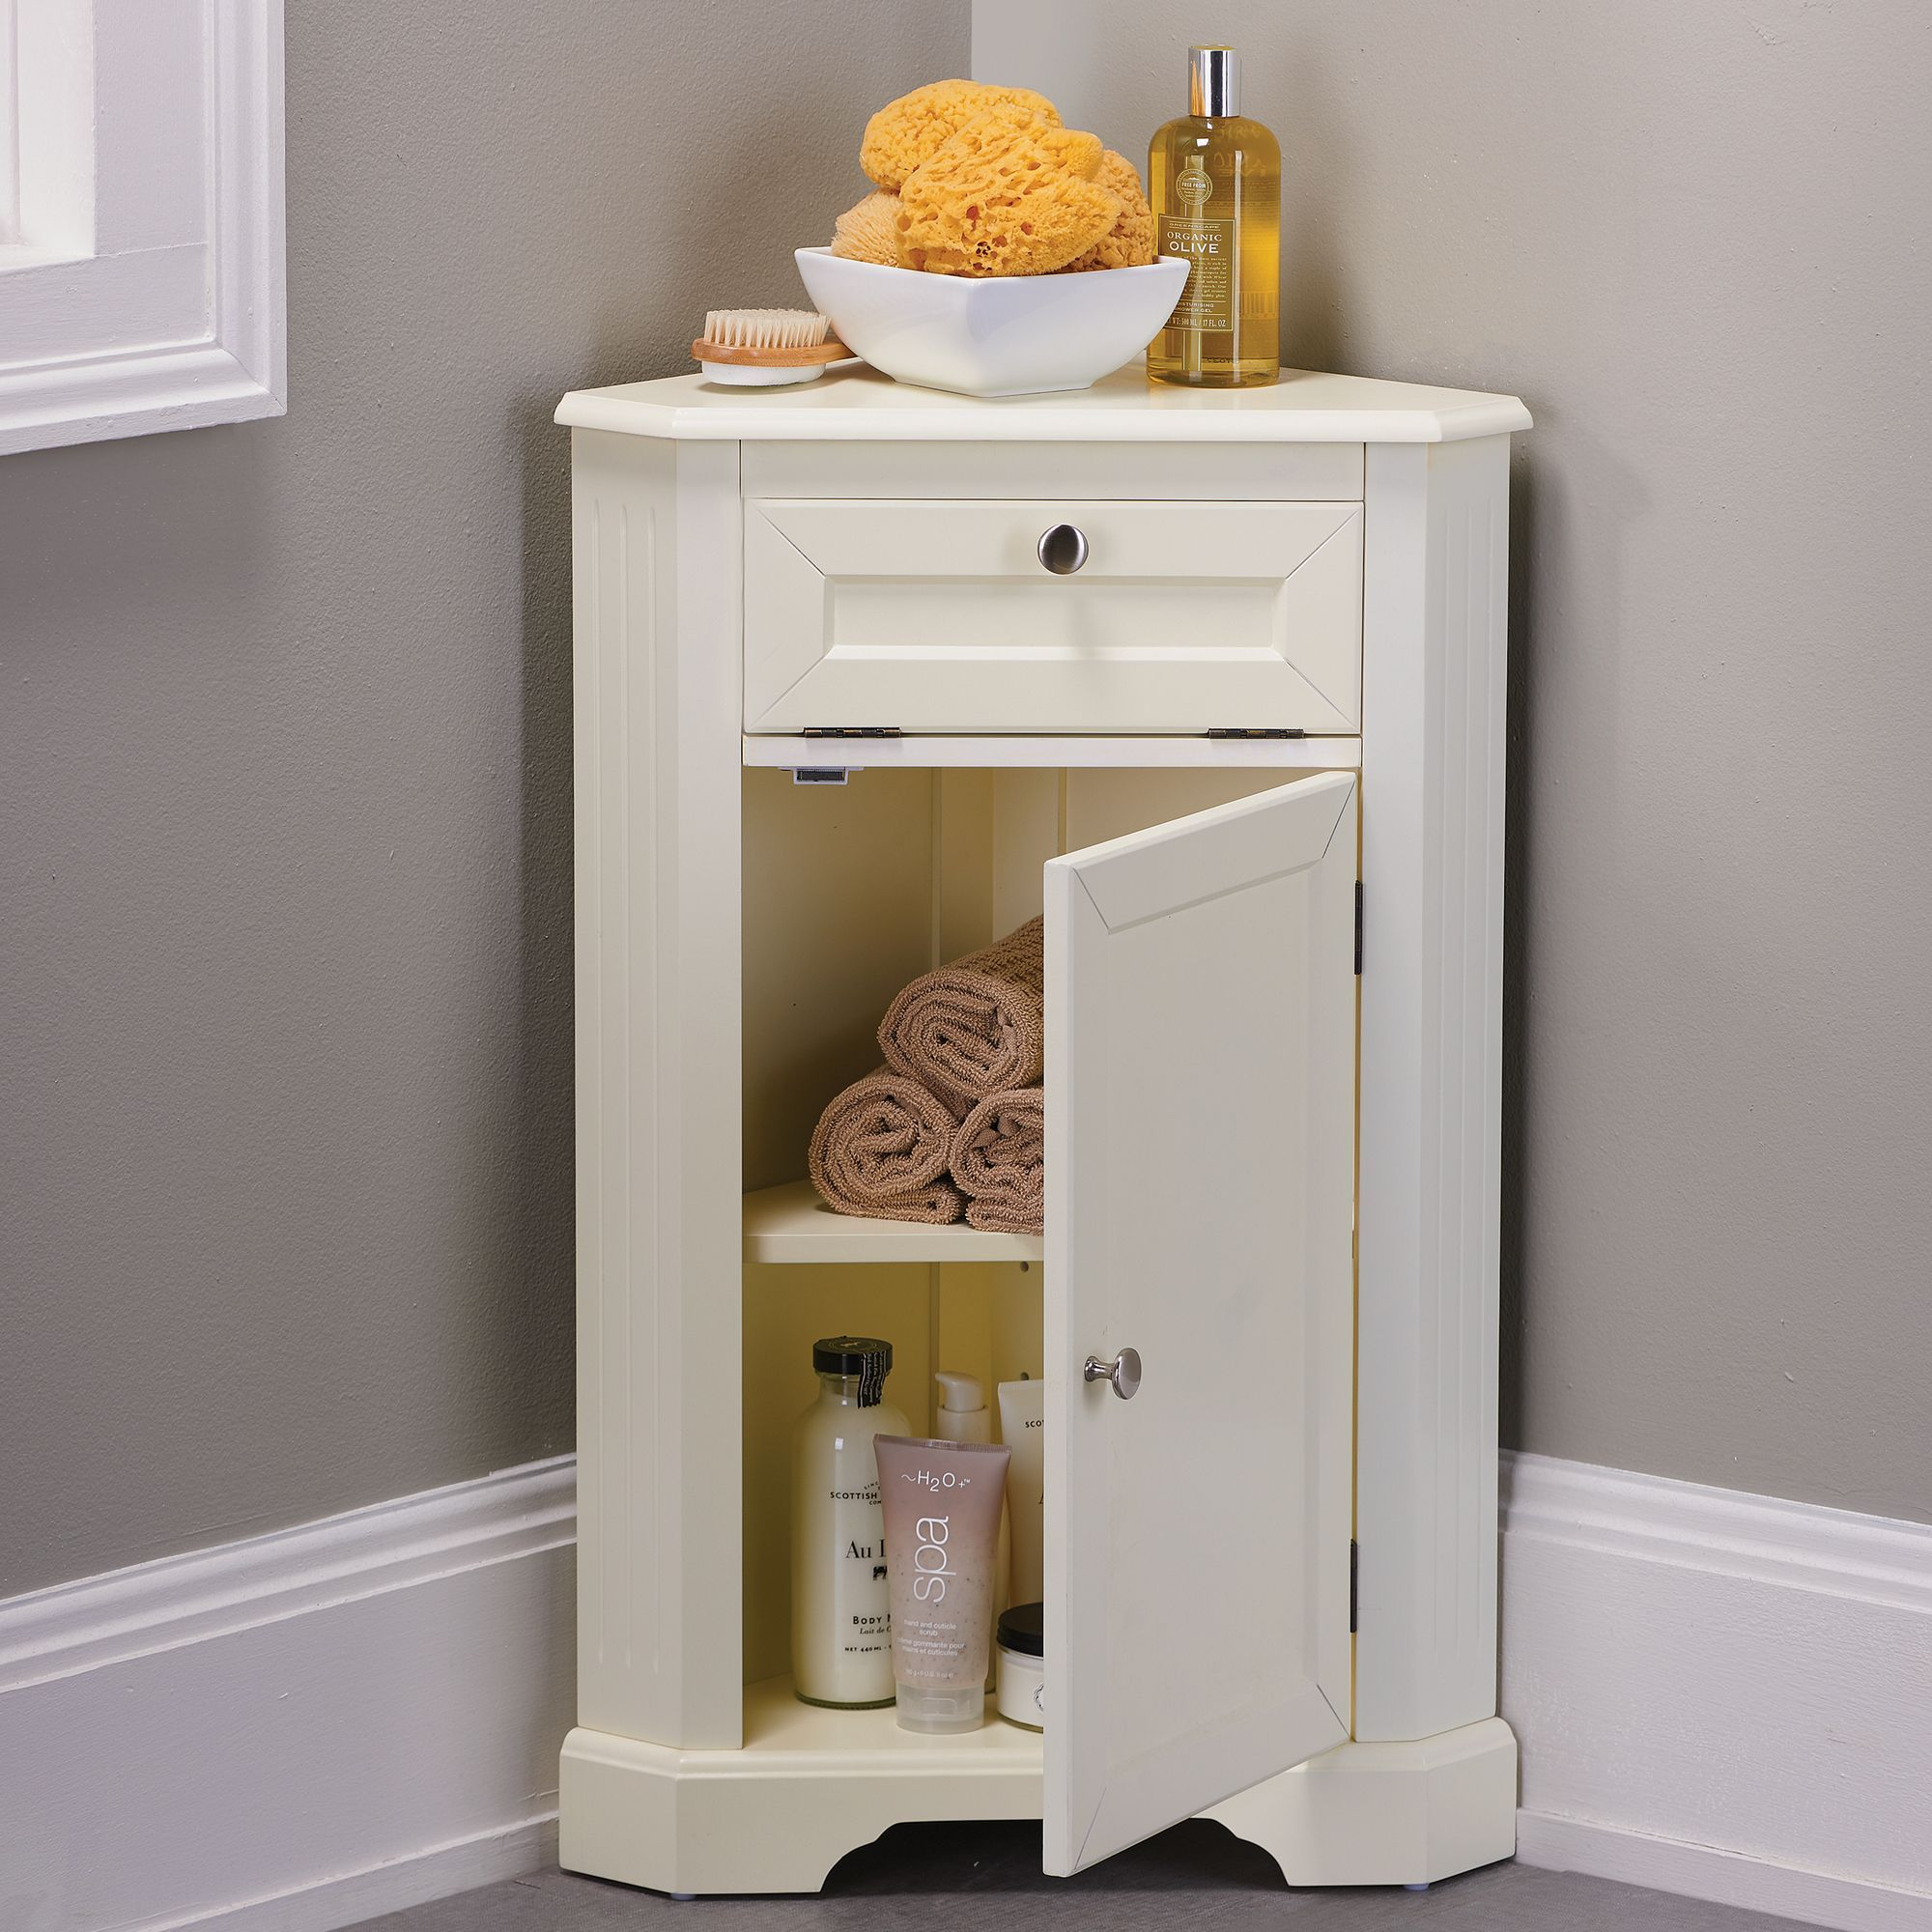 Maximize Storage E In Small Bathrooms With Our Weatherby Corner Cabinet Bathroom